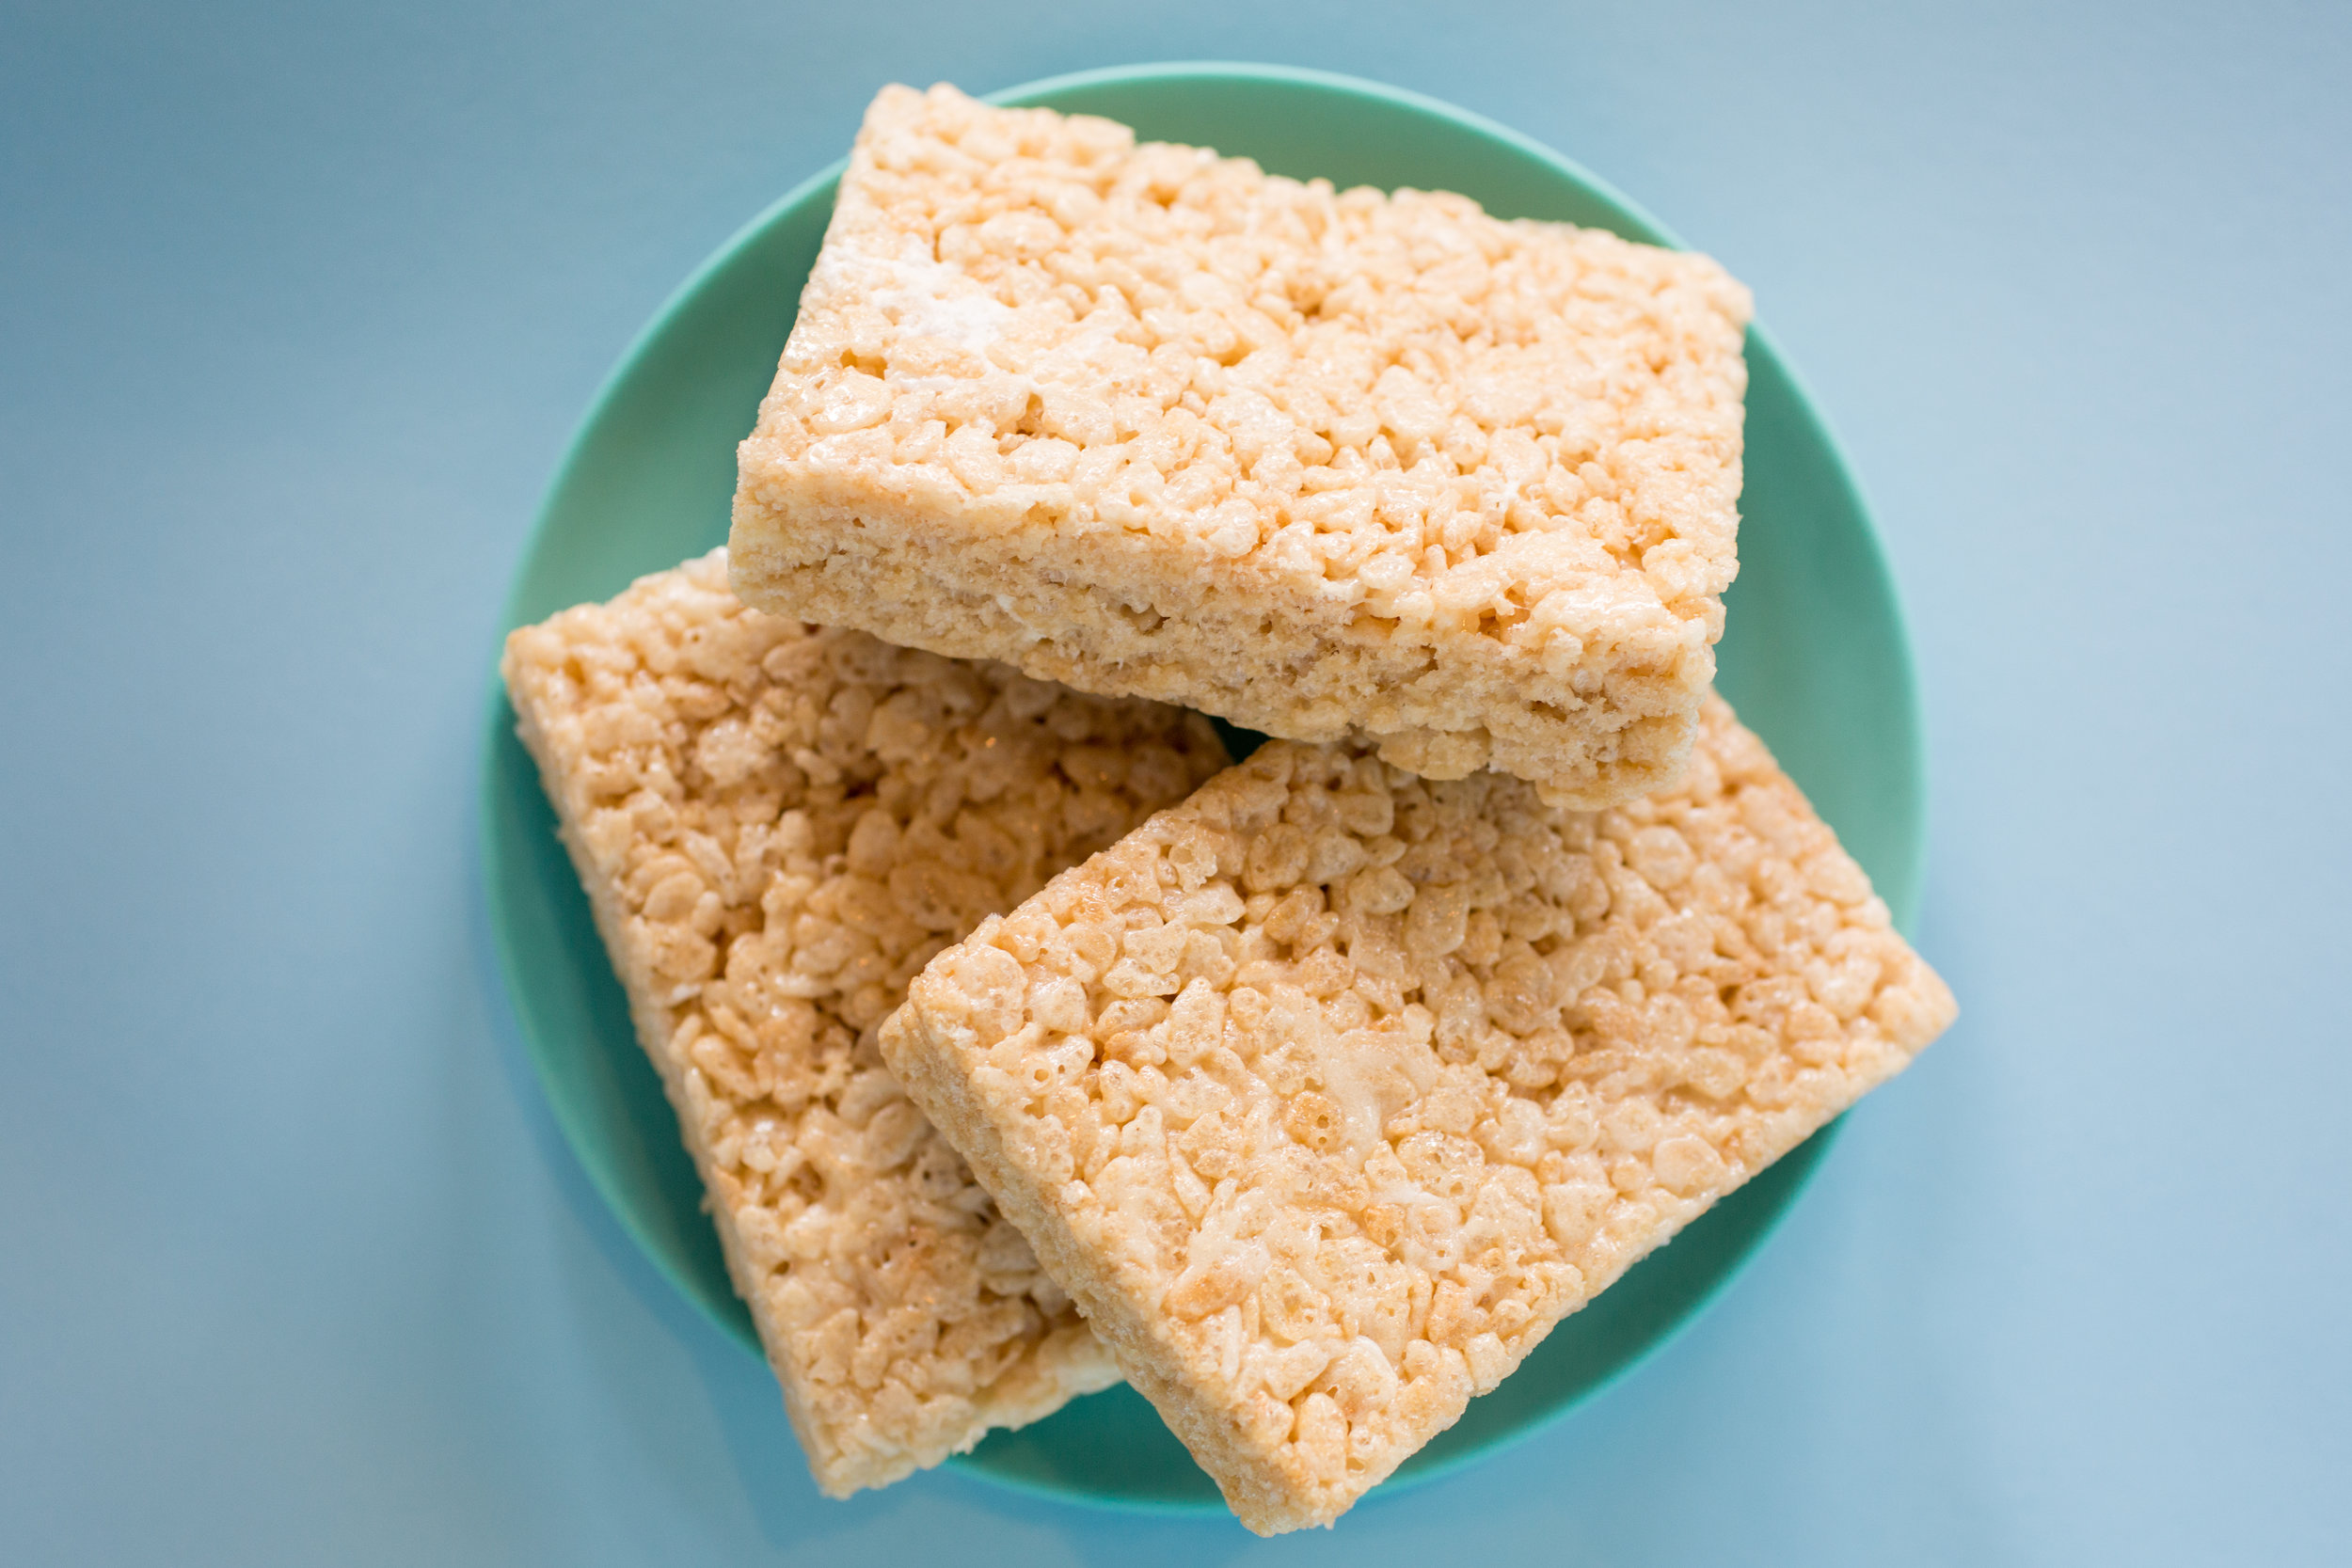 Food photography of vegan rice krispie treats for Rainbow Bakery, a vegan bakery in Bloomington, Indiana.